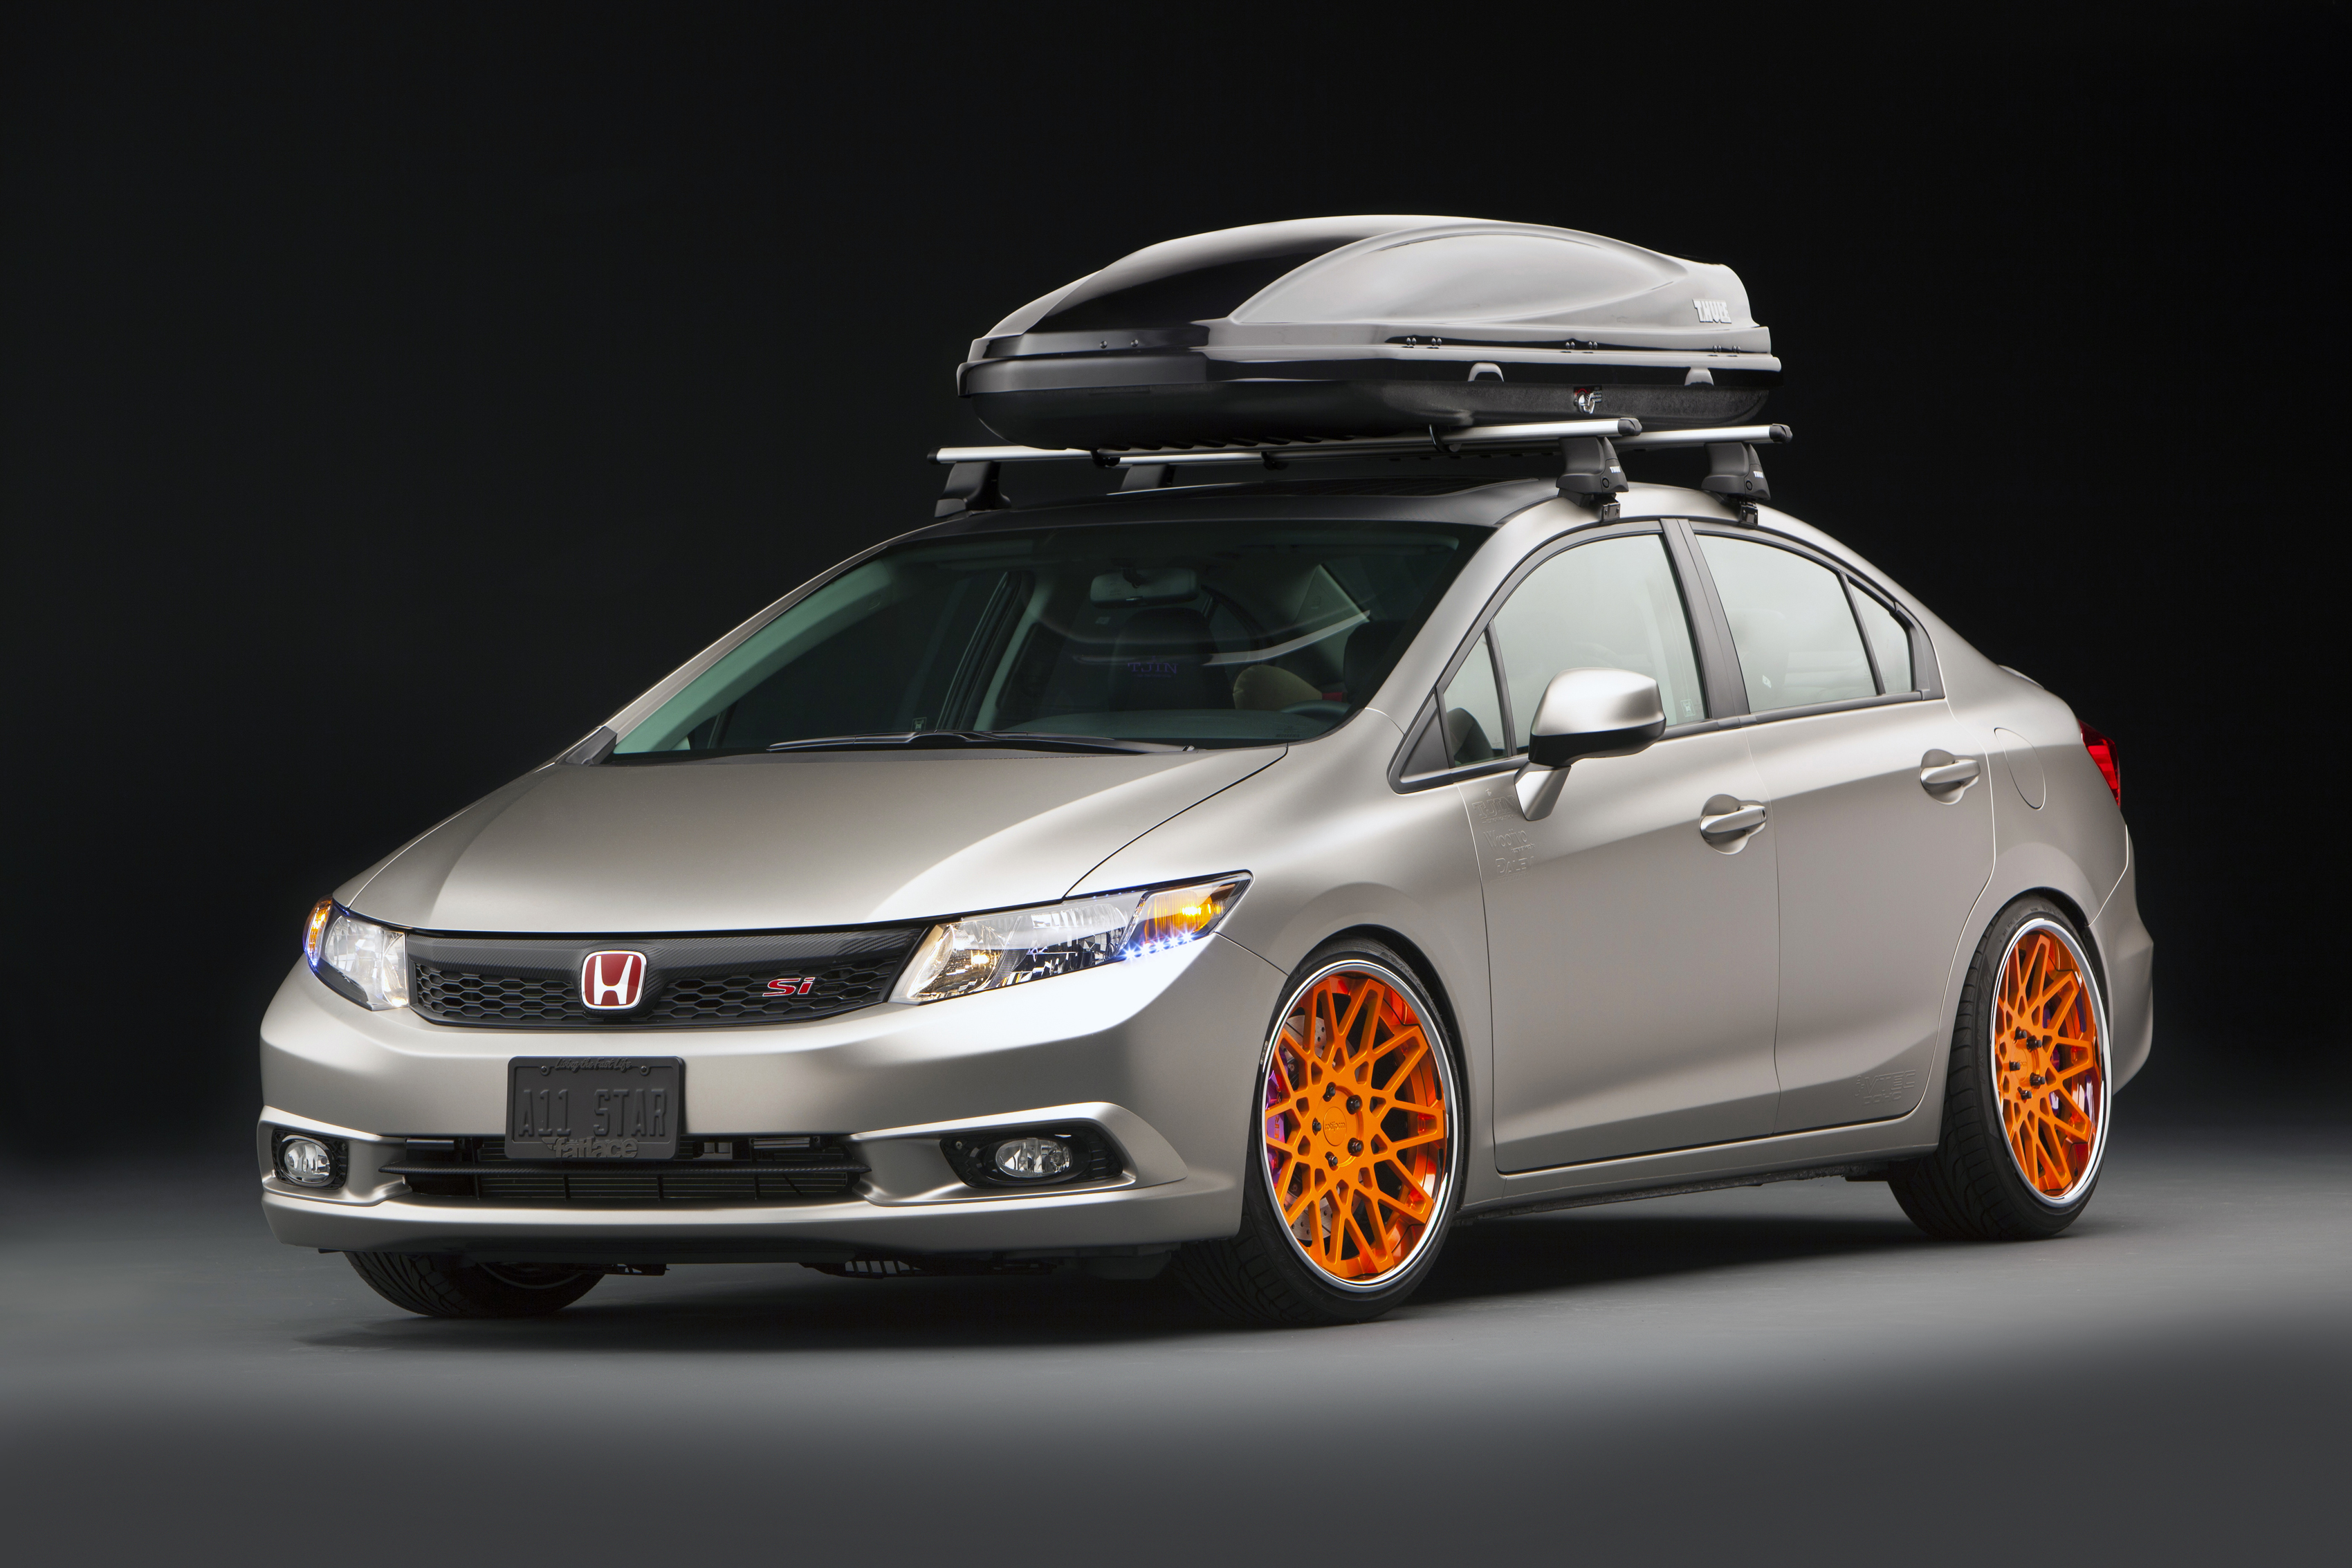 2012 honda civic si tjin edition review gallery top speed. Black Bedroom Furniture Sets. Home Design Ideas